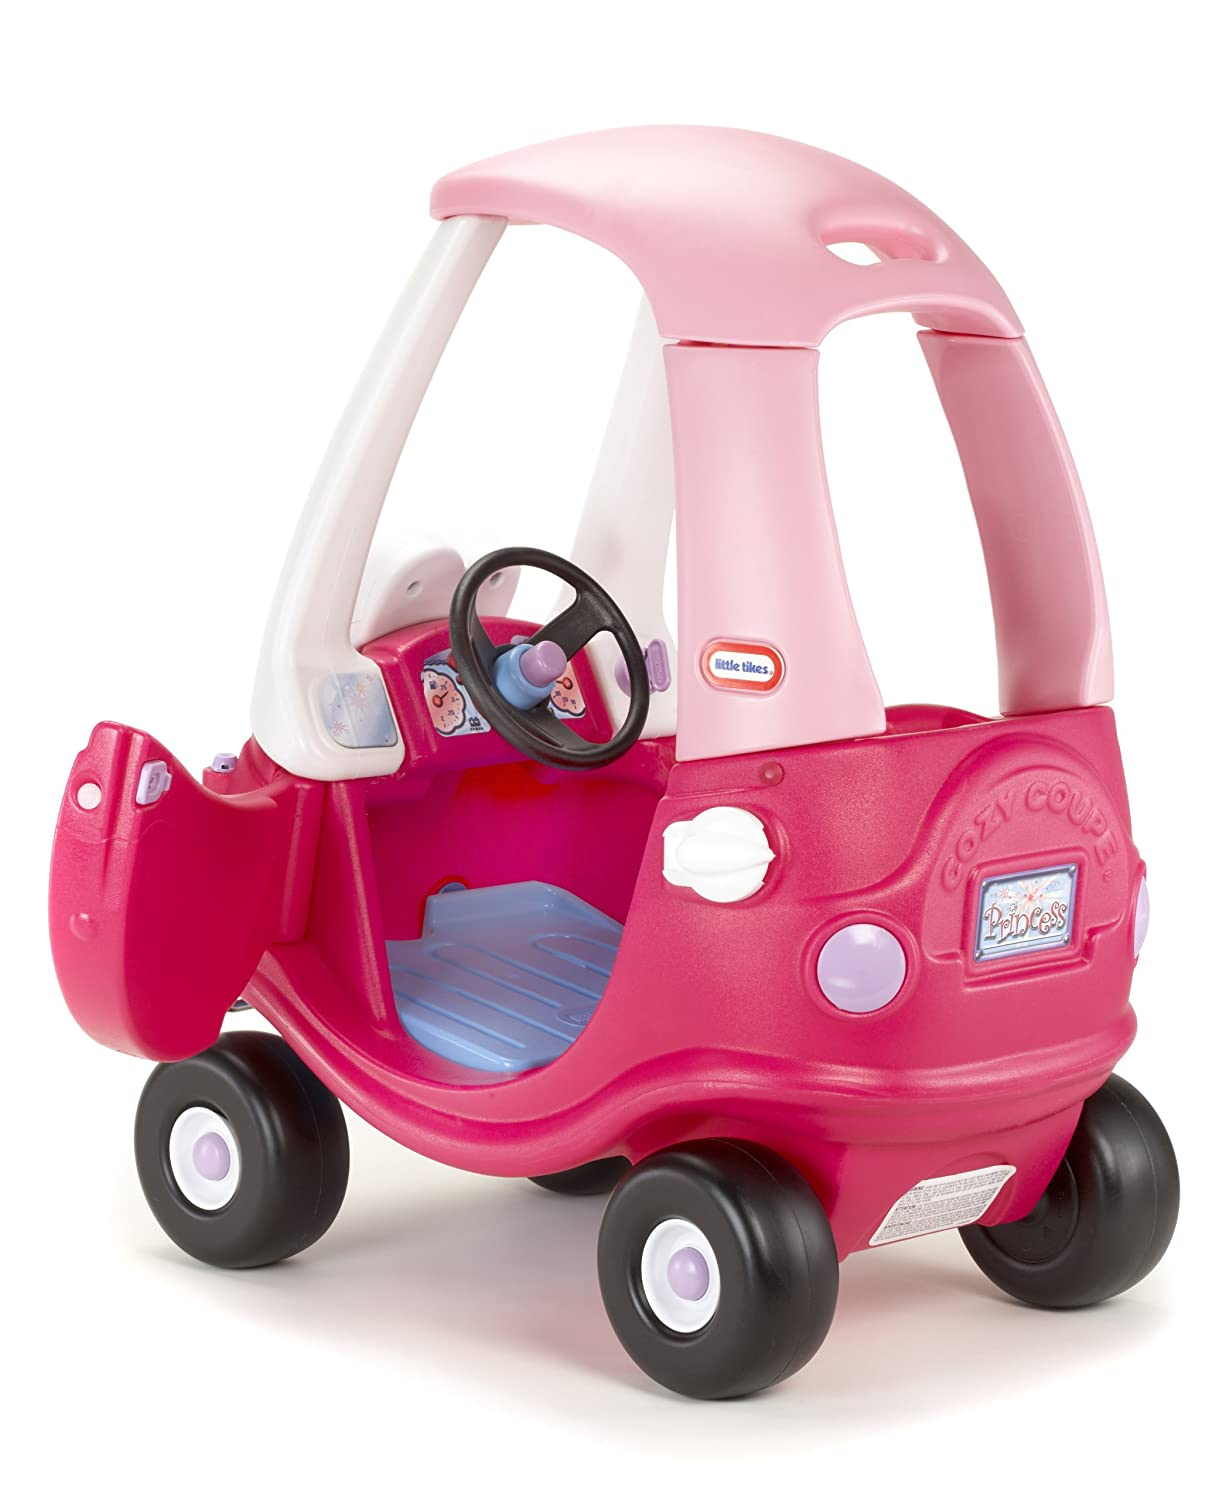 An Image of Little Tikes Princess Cozy Coupe Magenta